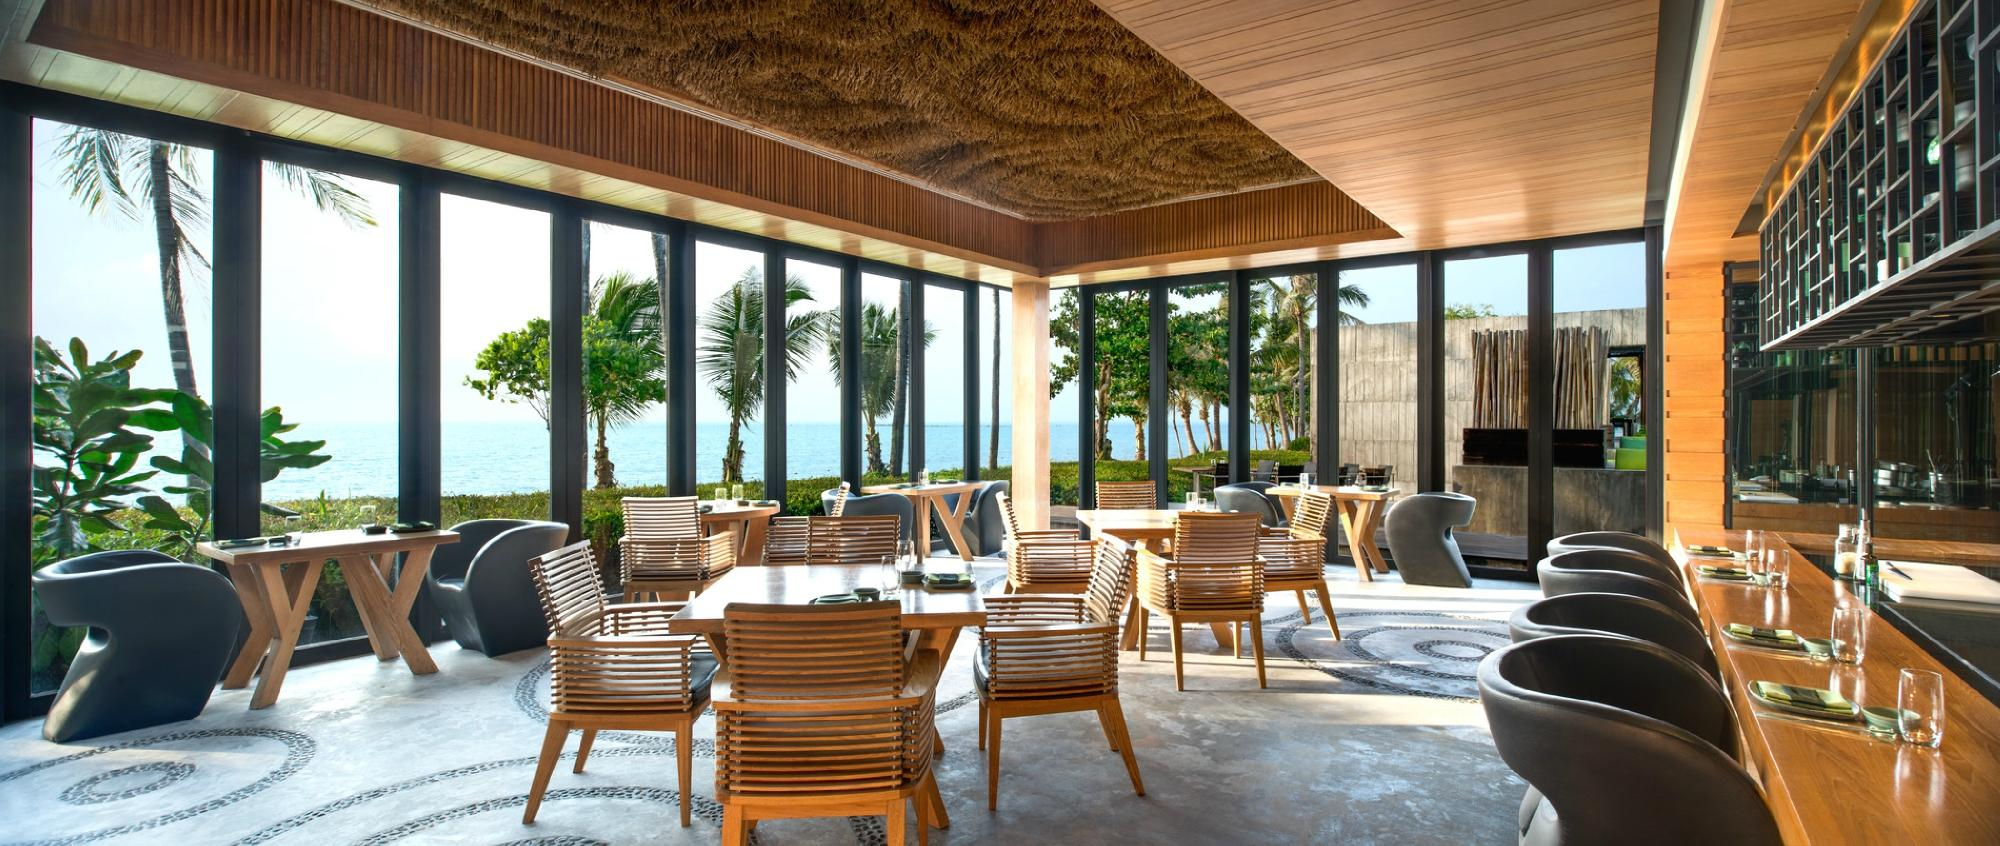 W Retreat Koh Samui UPDATED 2017 Prices Hotel Reviews